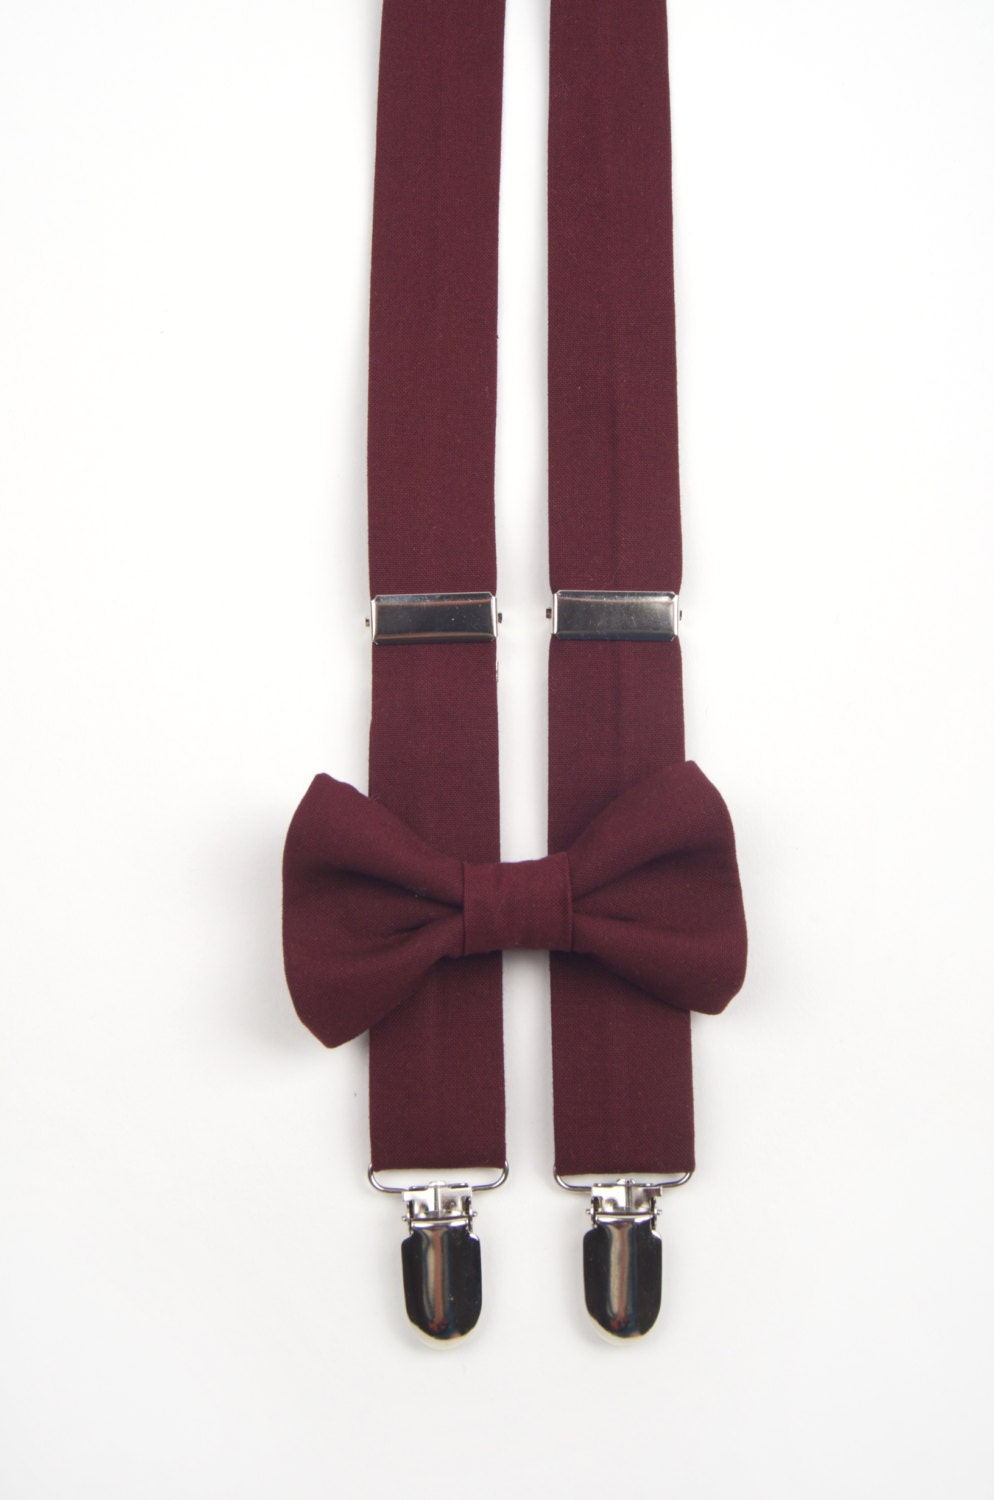 Shop the largest selection of men's suspenders for your formal occasions. Match suspenders with our bow ties & ties. The best deals on loop or clip style suspenders, boys suspenders also available.